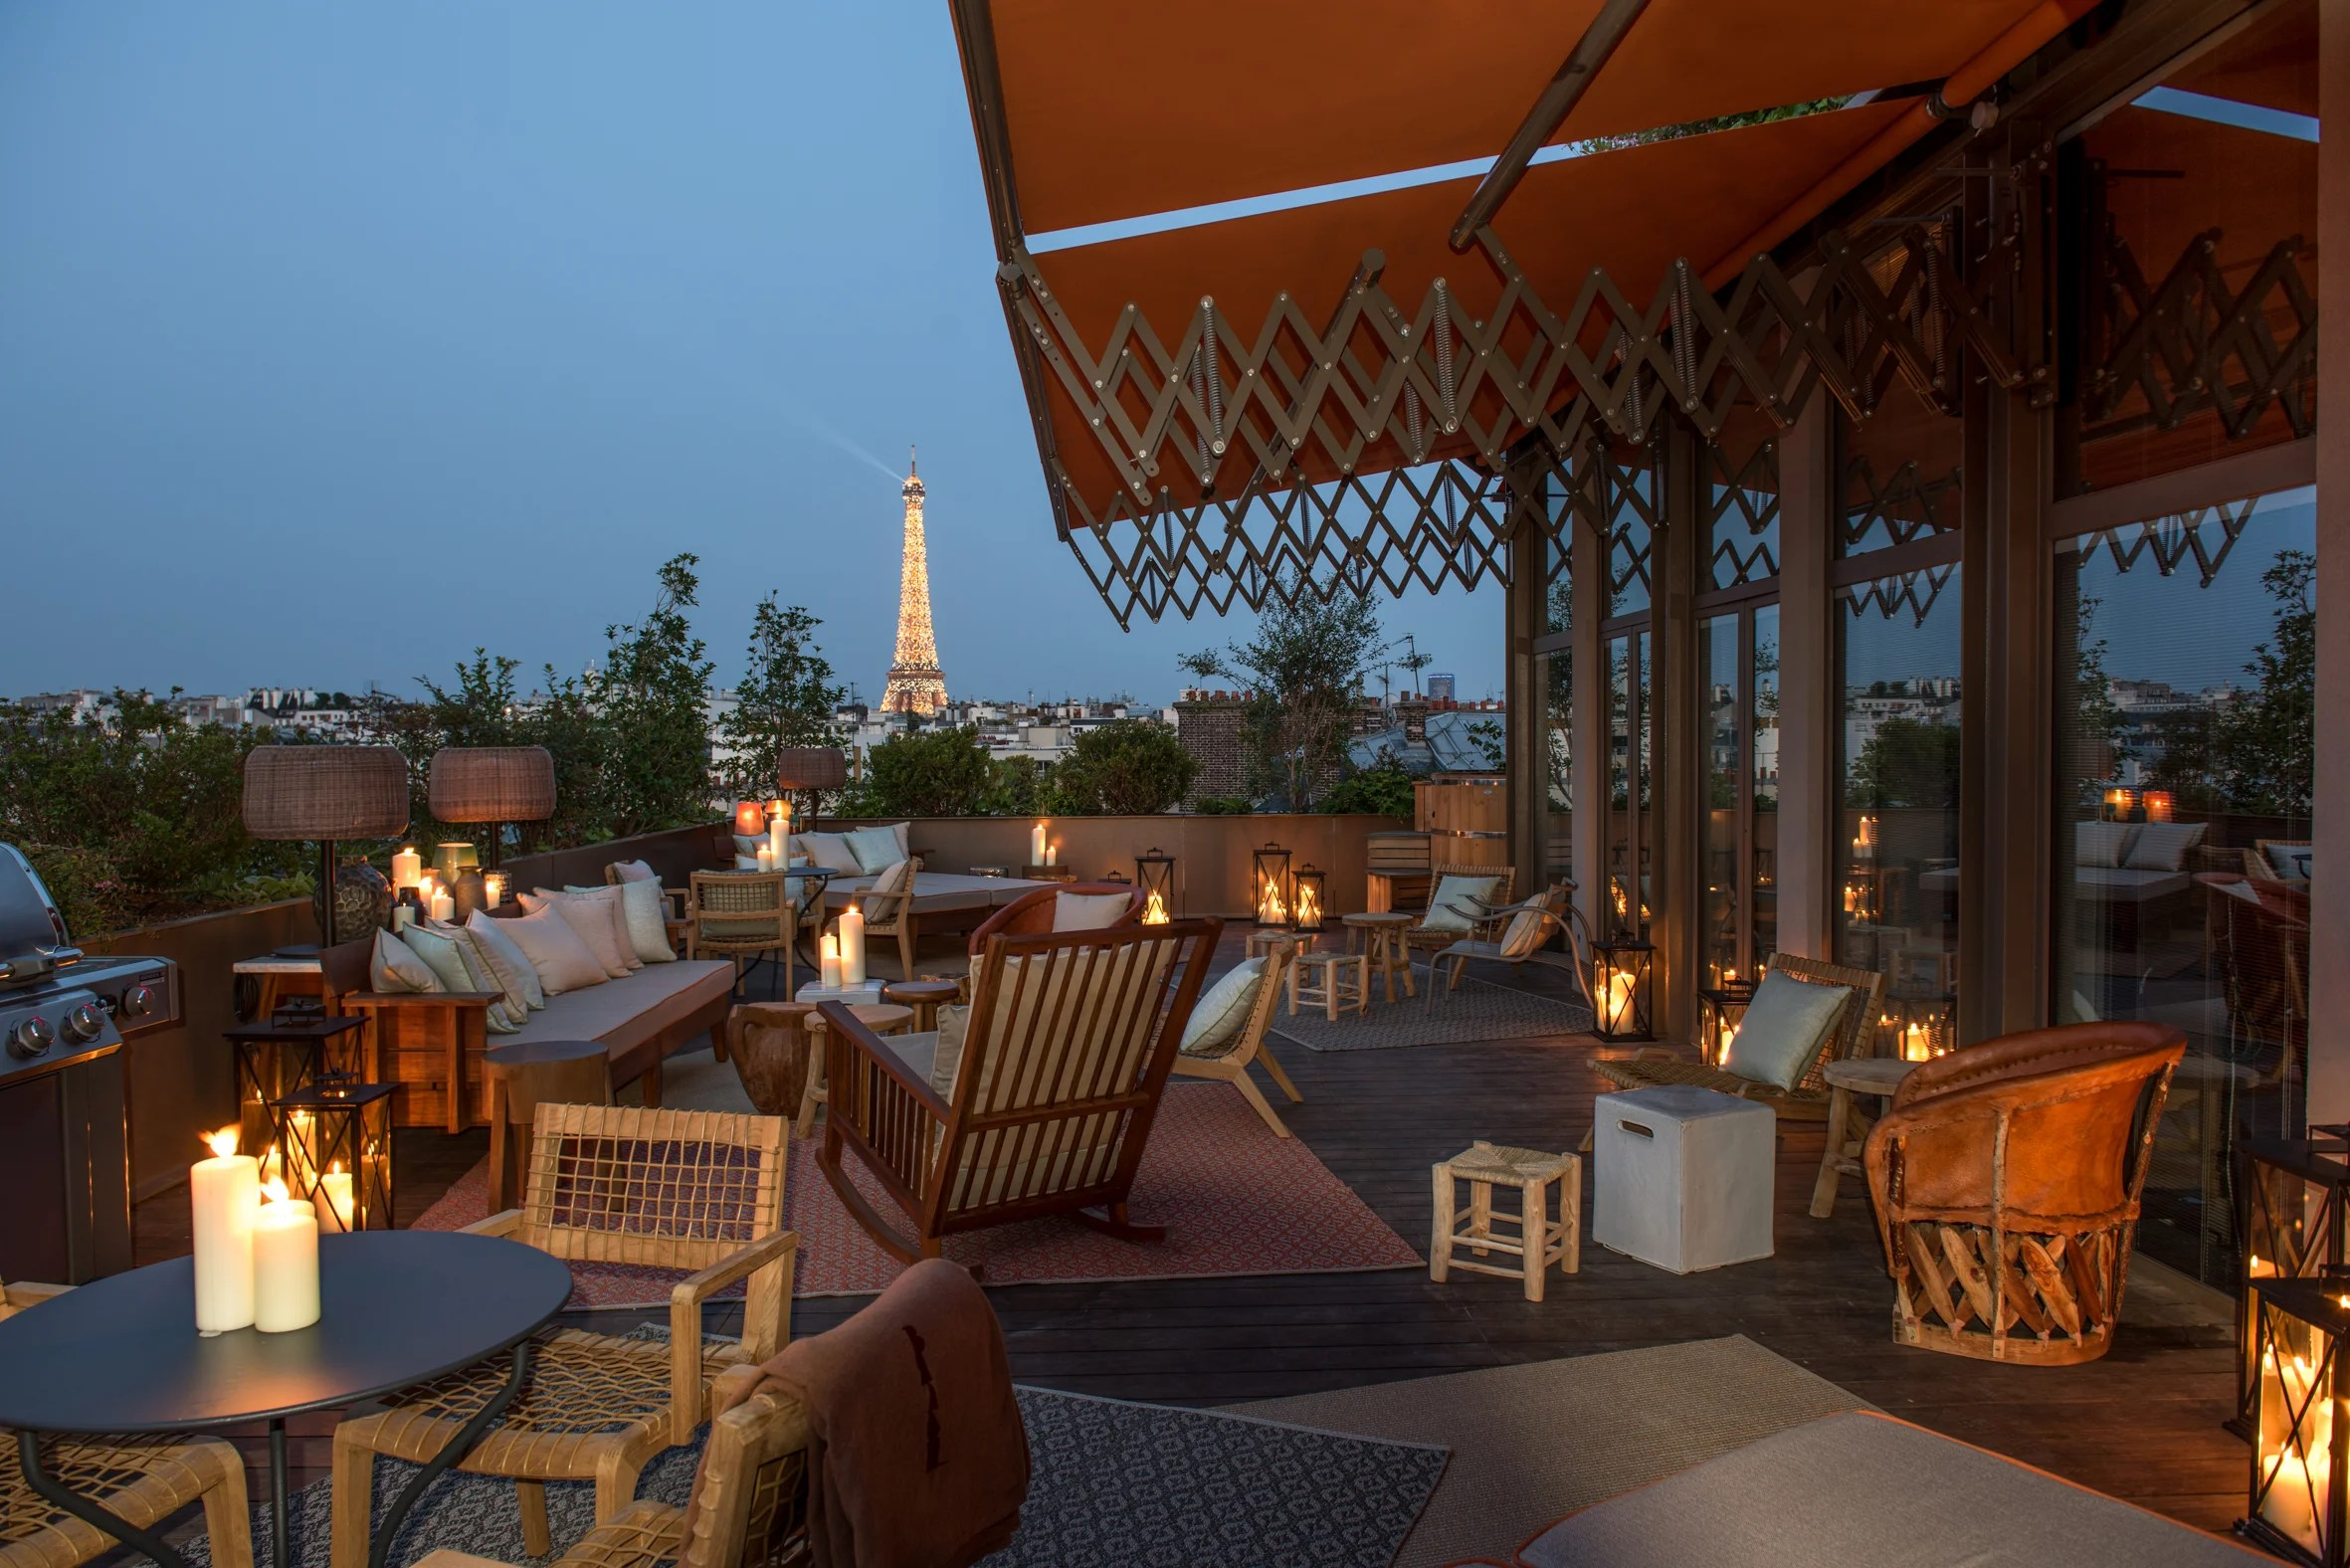 Best Of Terrasse Paris Paris Hotels 15 Best Places For Style And Location The Independent